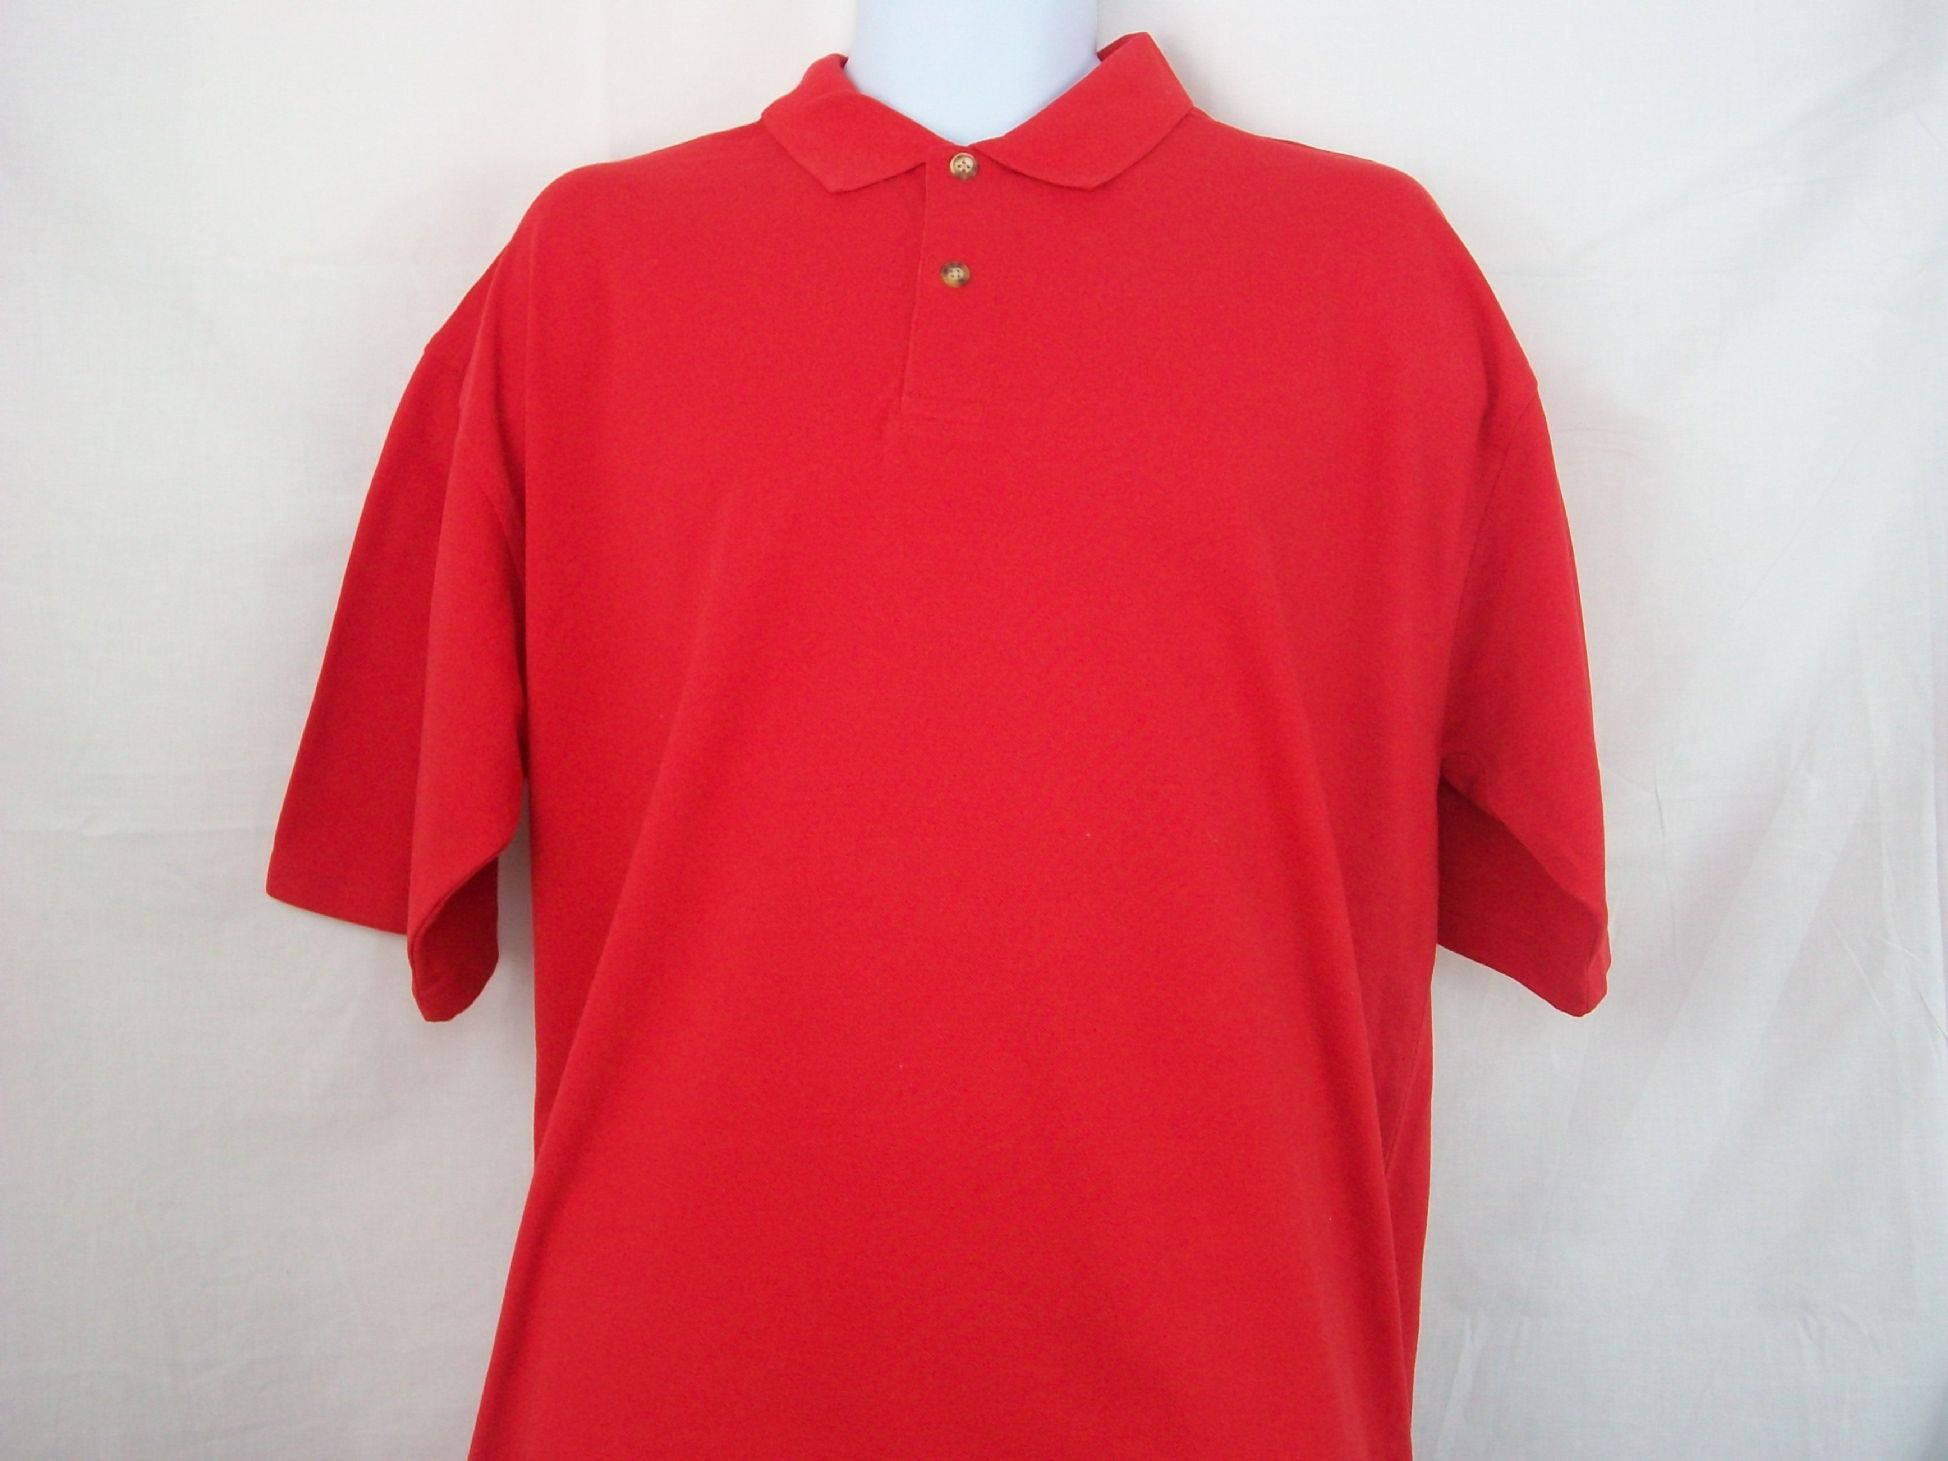 Polo shirt design your own - Design Your Own Red Polo Shirt Size Xl Only